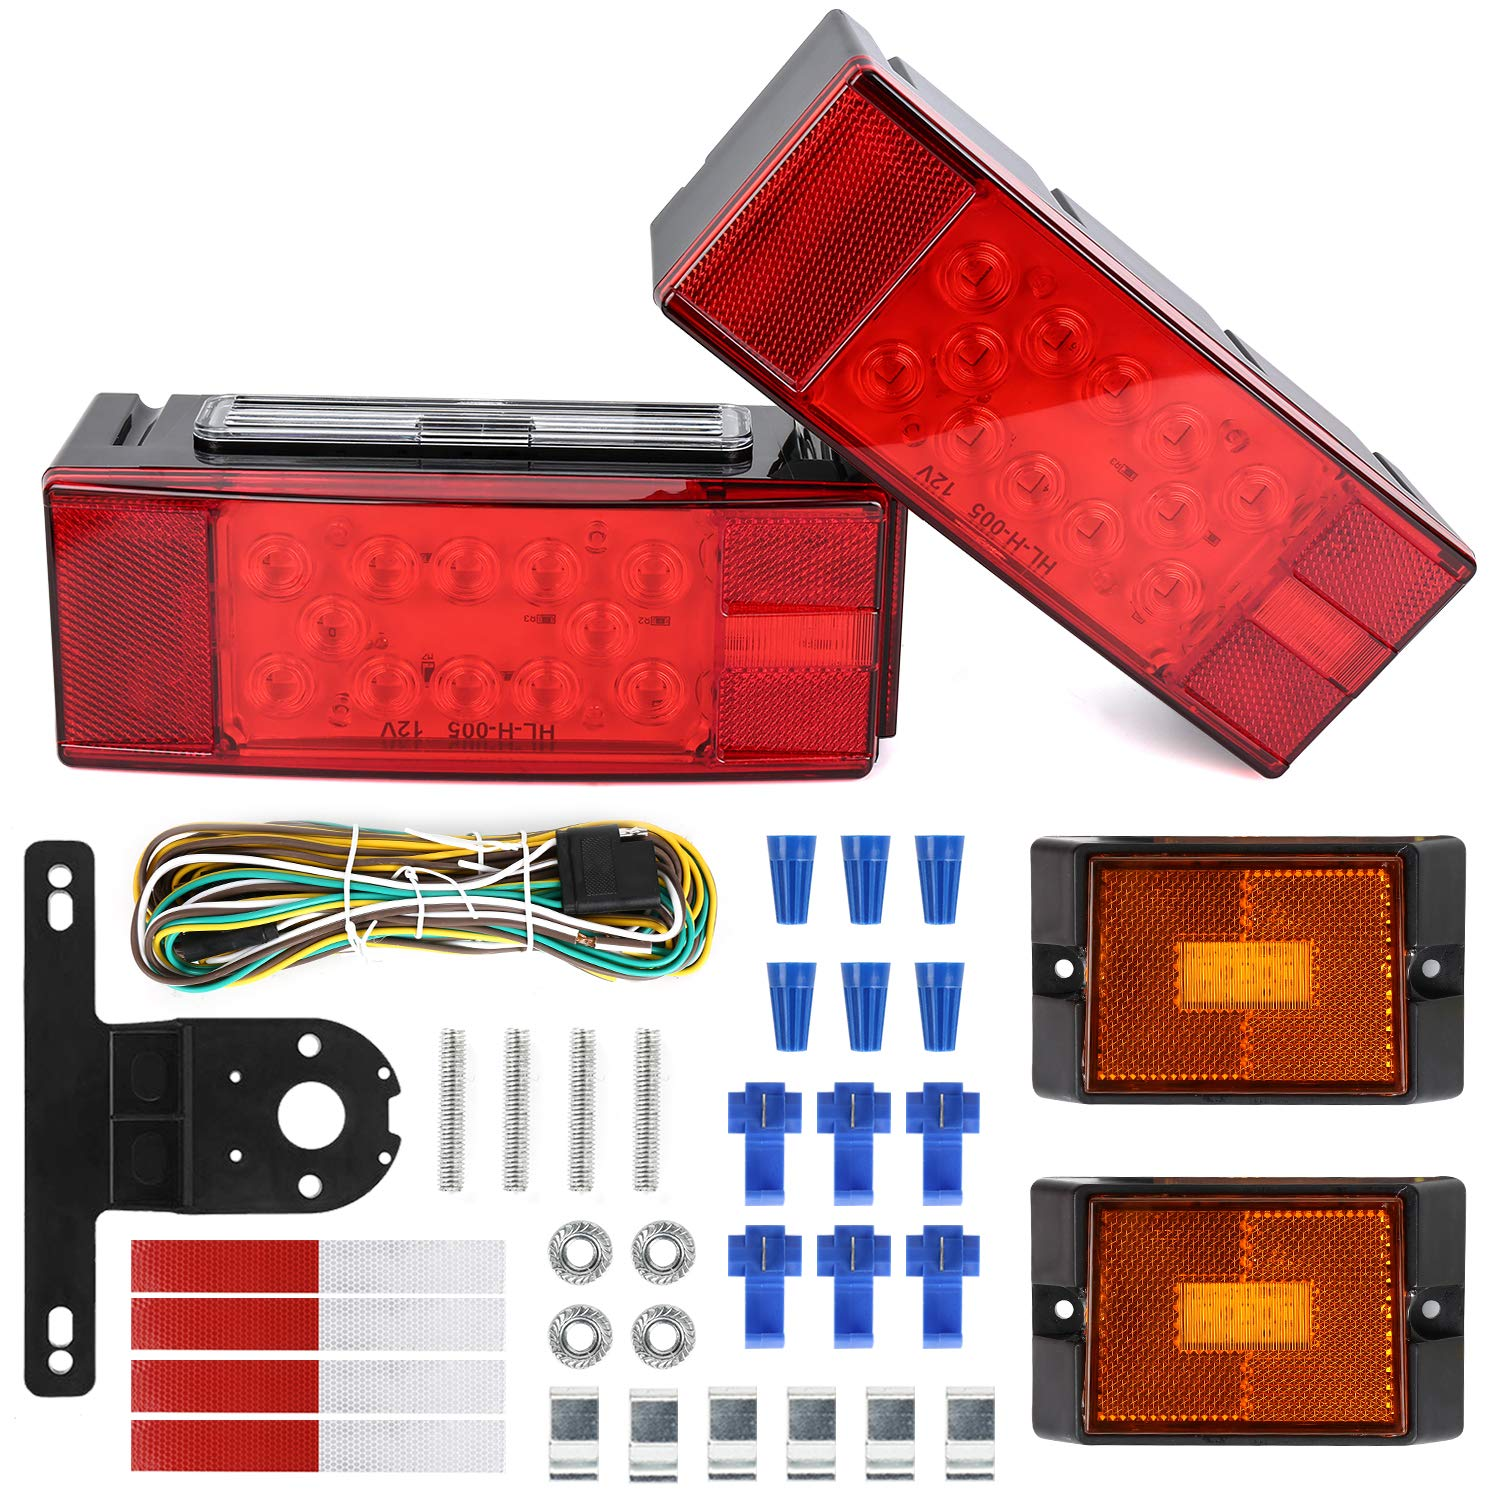 WoneNice 12V LED Low Profile Submersible Trailer Tail Light Kit, Combined Stop, Taillights, Turn Function by WoneNice